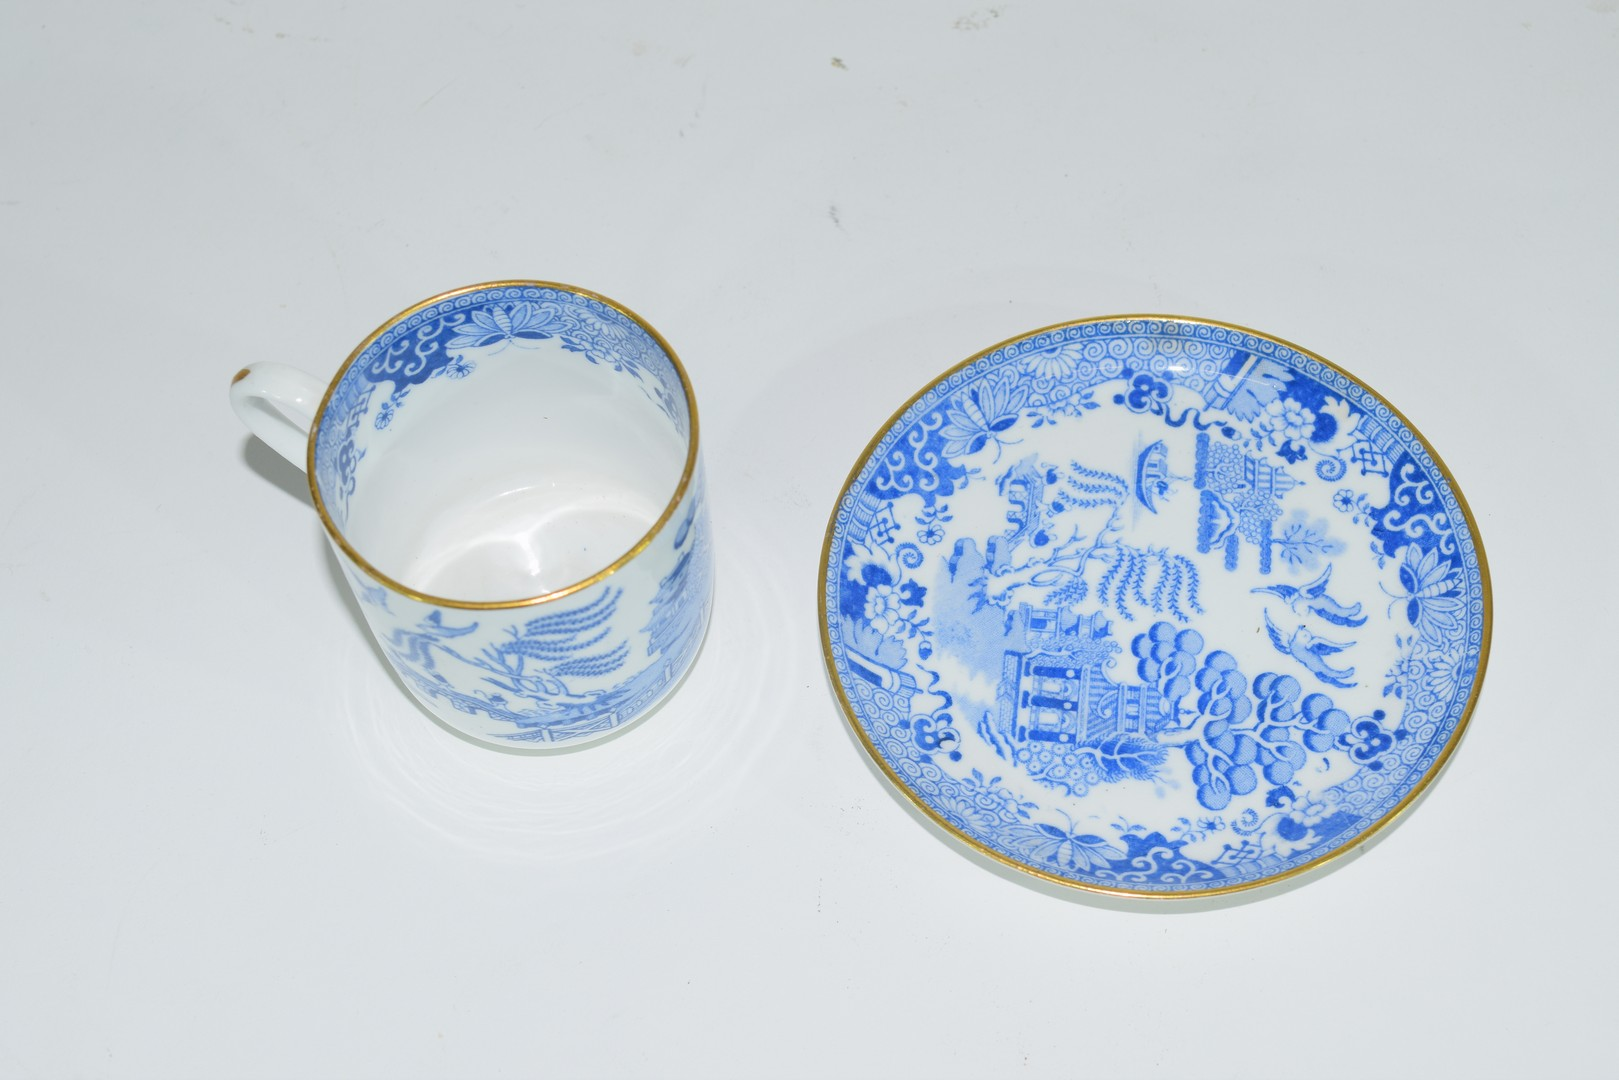 Group of Continental porcelains including a Vienna style cup and saucer - Image 11 of 12